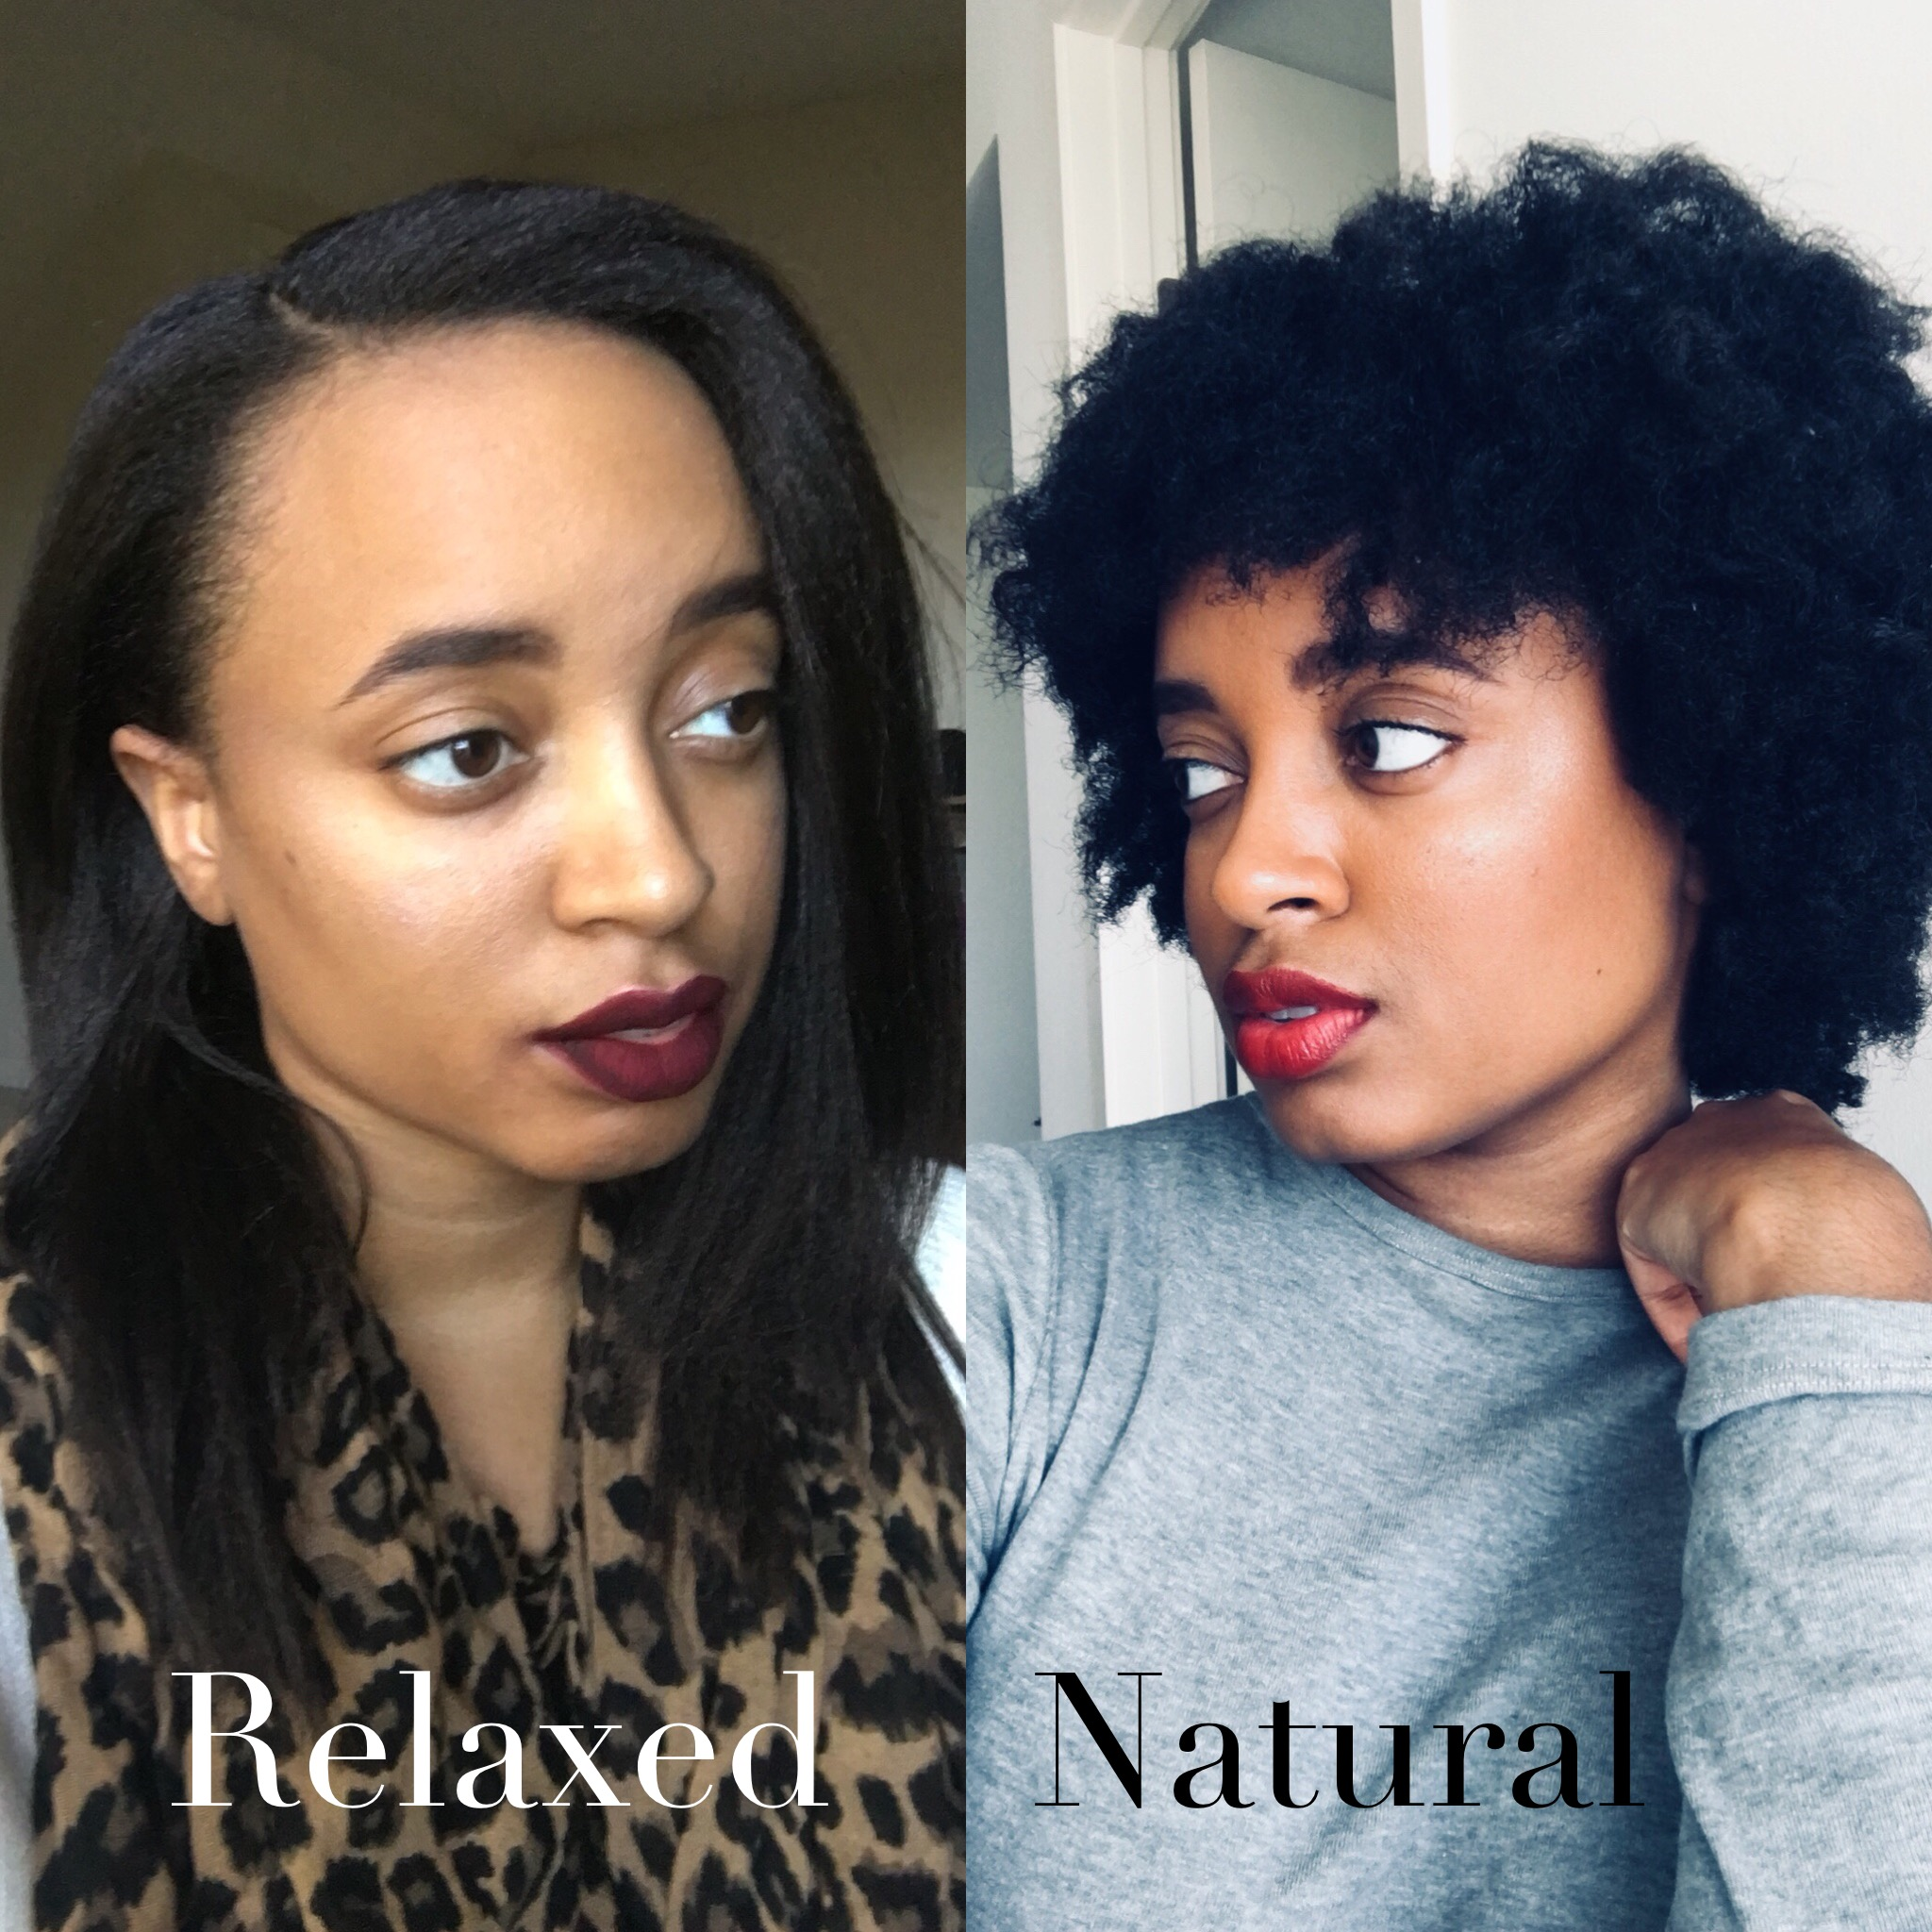 Image showing Shuna Rae with relaxed hair on left and natural hair on right.